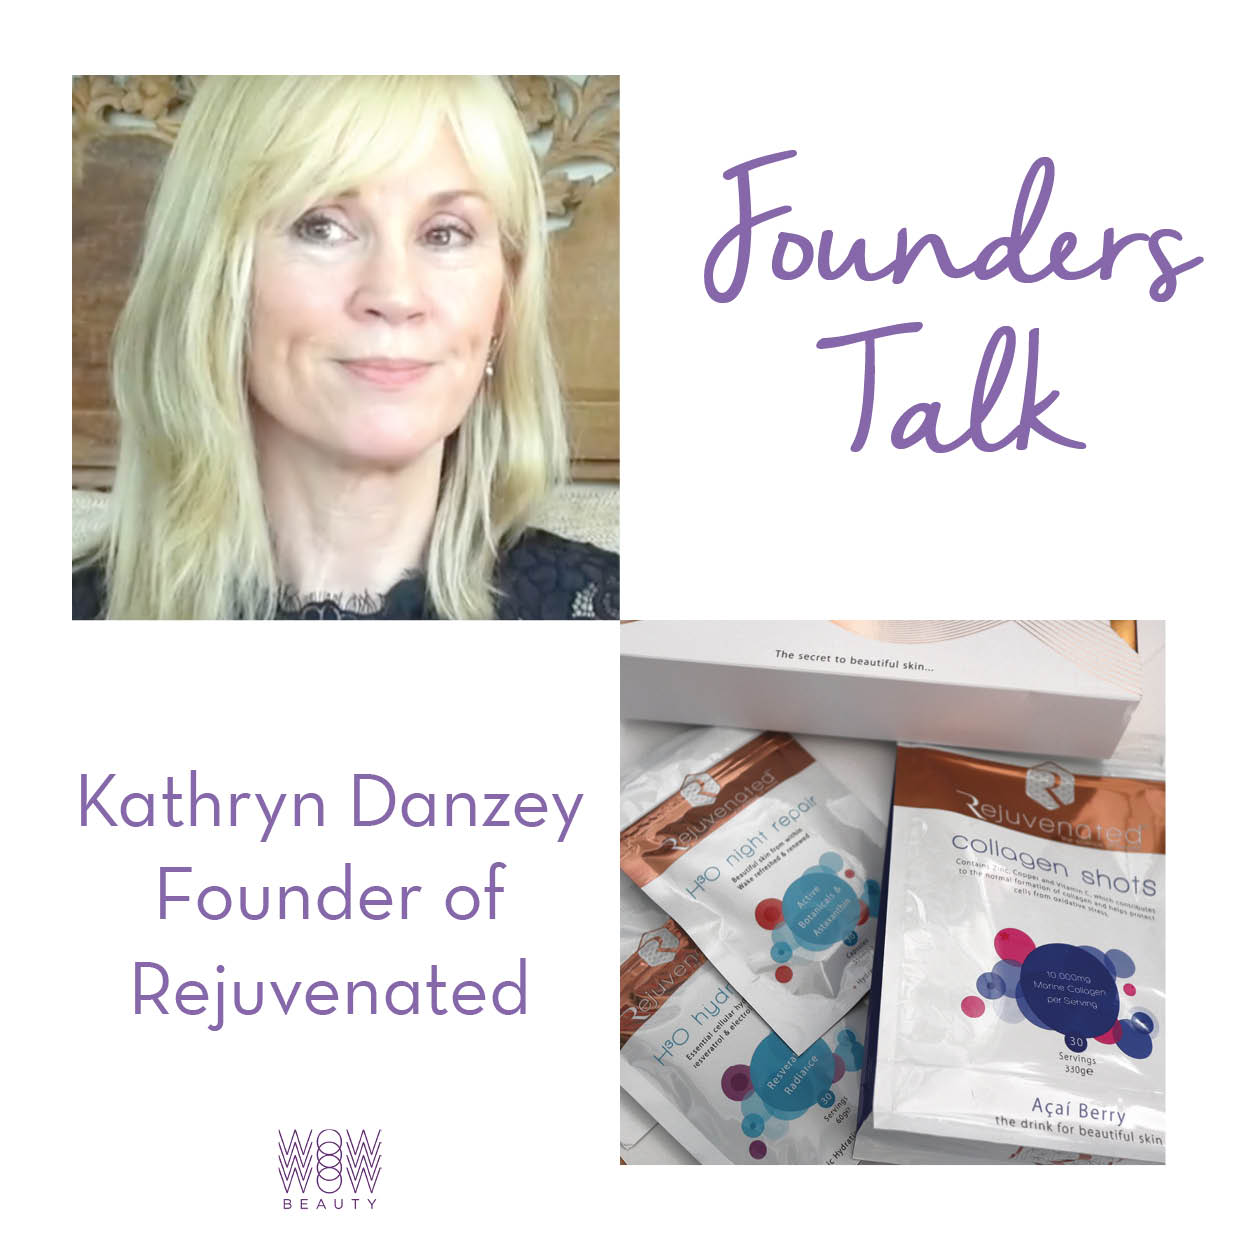 Kathryn Danzey founders talk